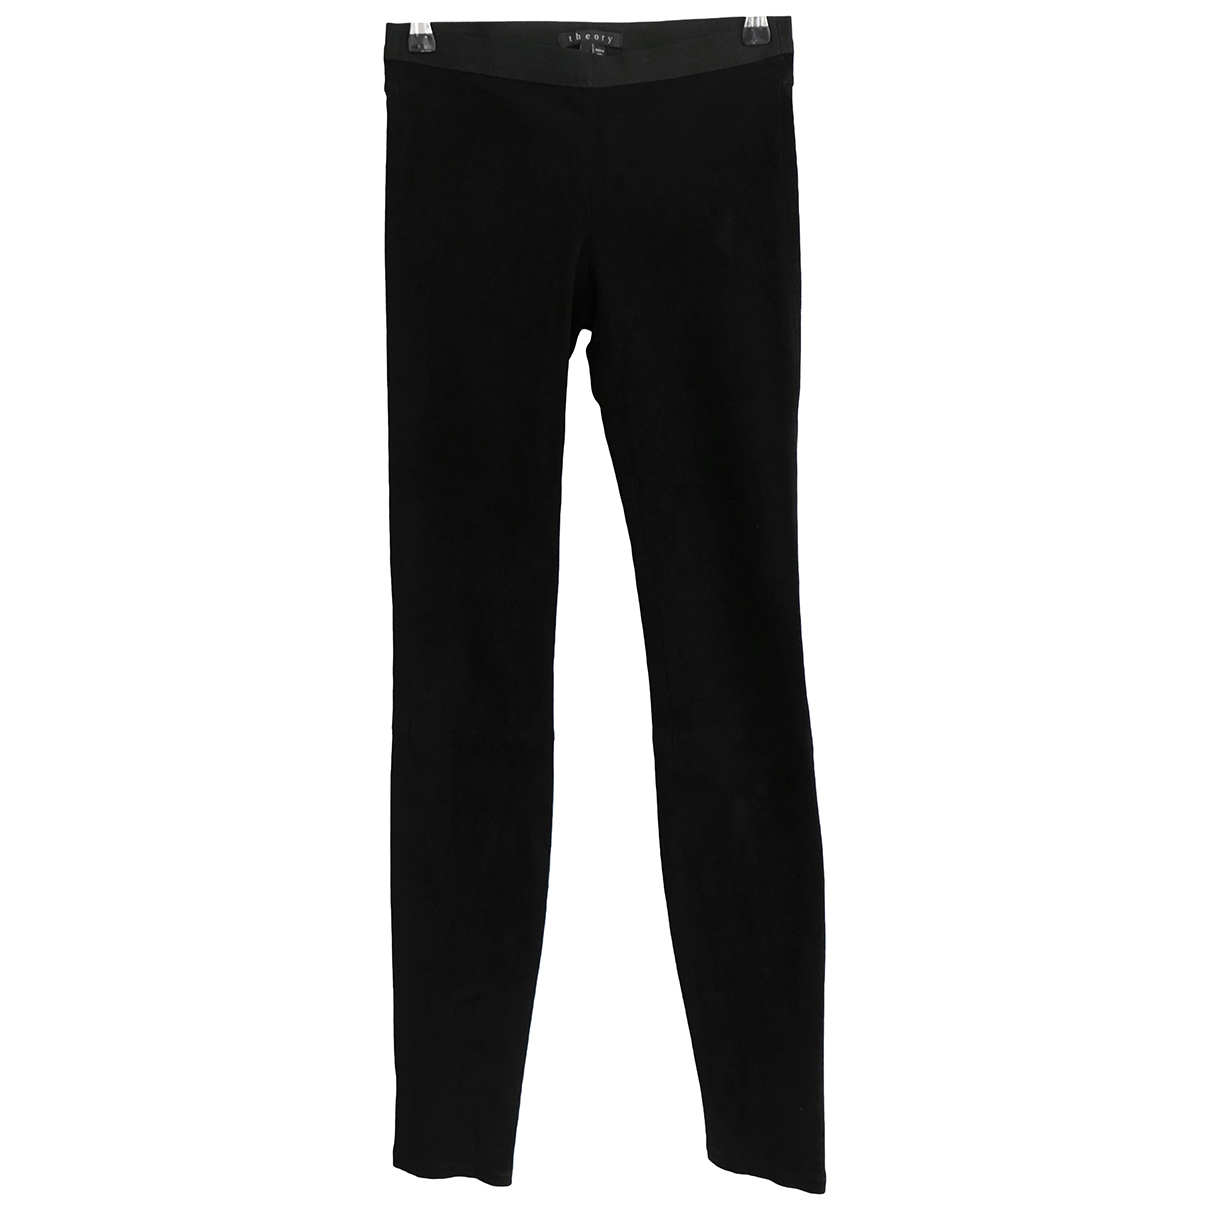 Theory N Black Suede Trousers for Women 2 US